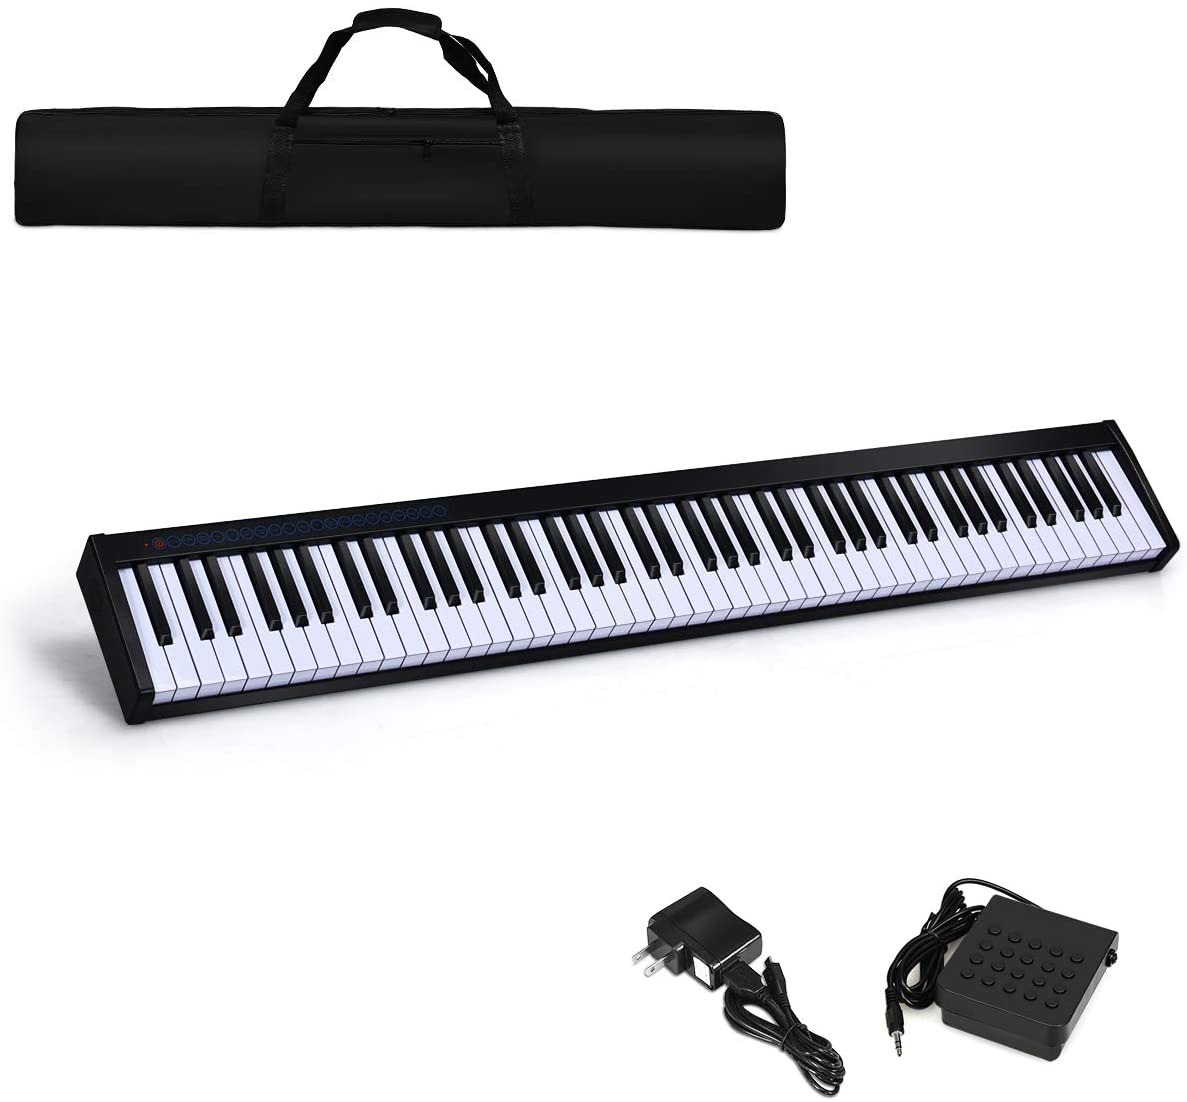 Costzon 88-Key Portable Digital Piano,Touch Sensitive Knocking Force Key Piano with External Speaker, Bluetooth Voice Function, MIDI Keyboard, Sustain Pedal, Power Supply and a Black Handbag (Black)